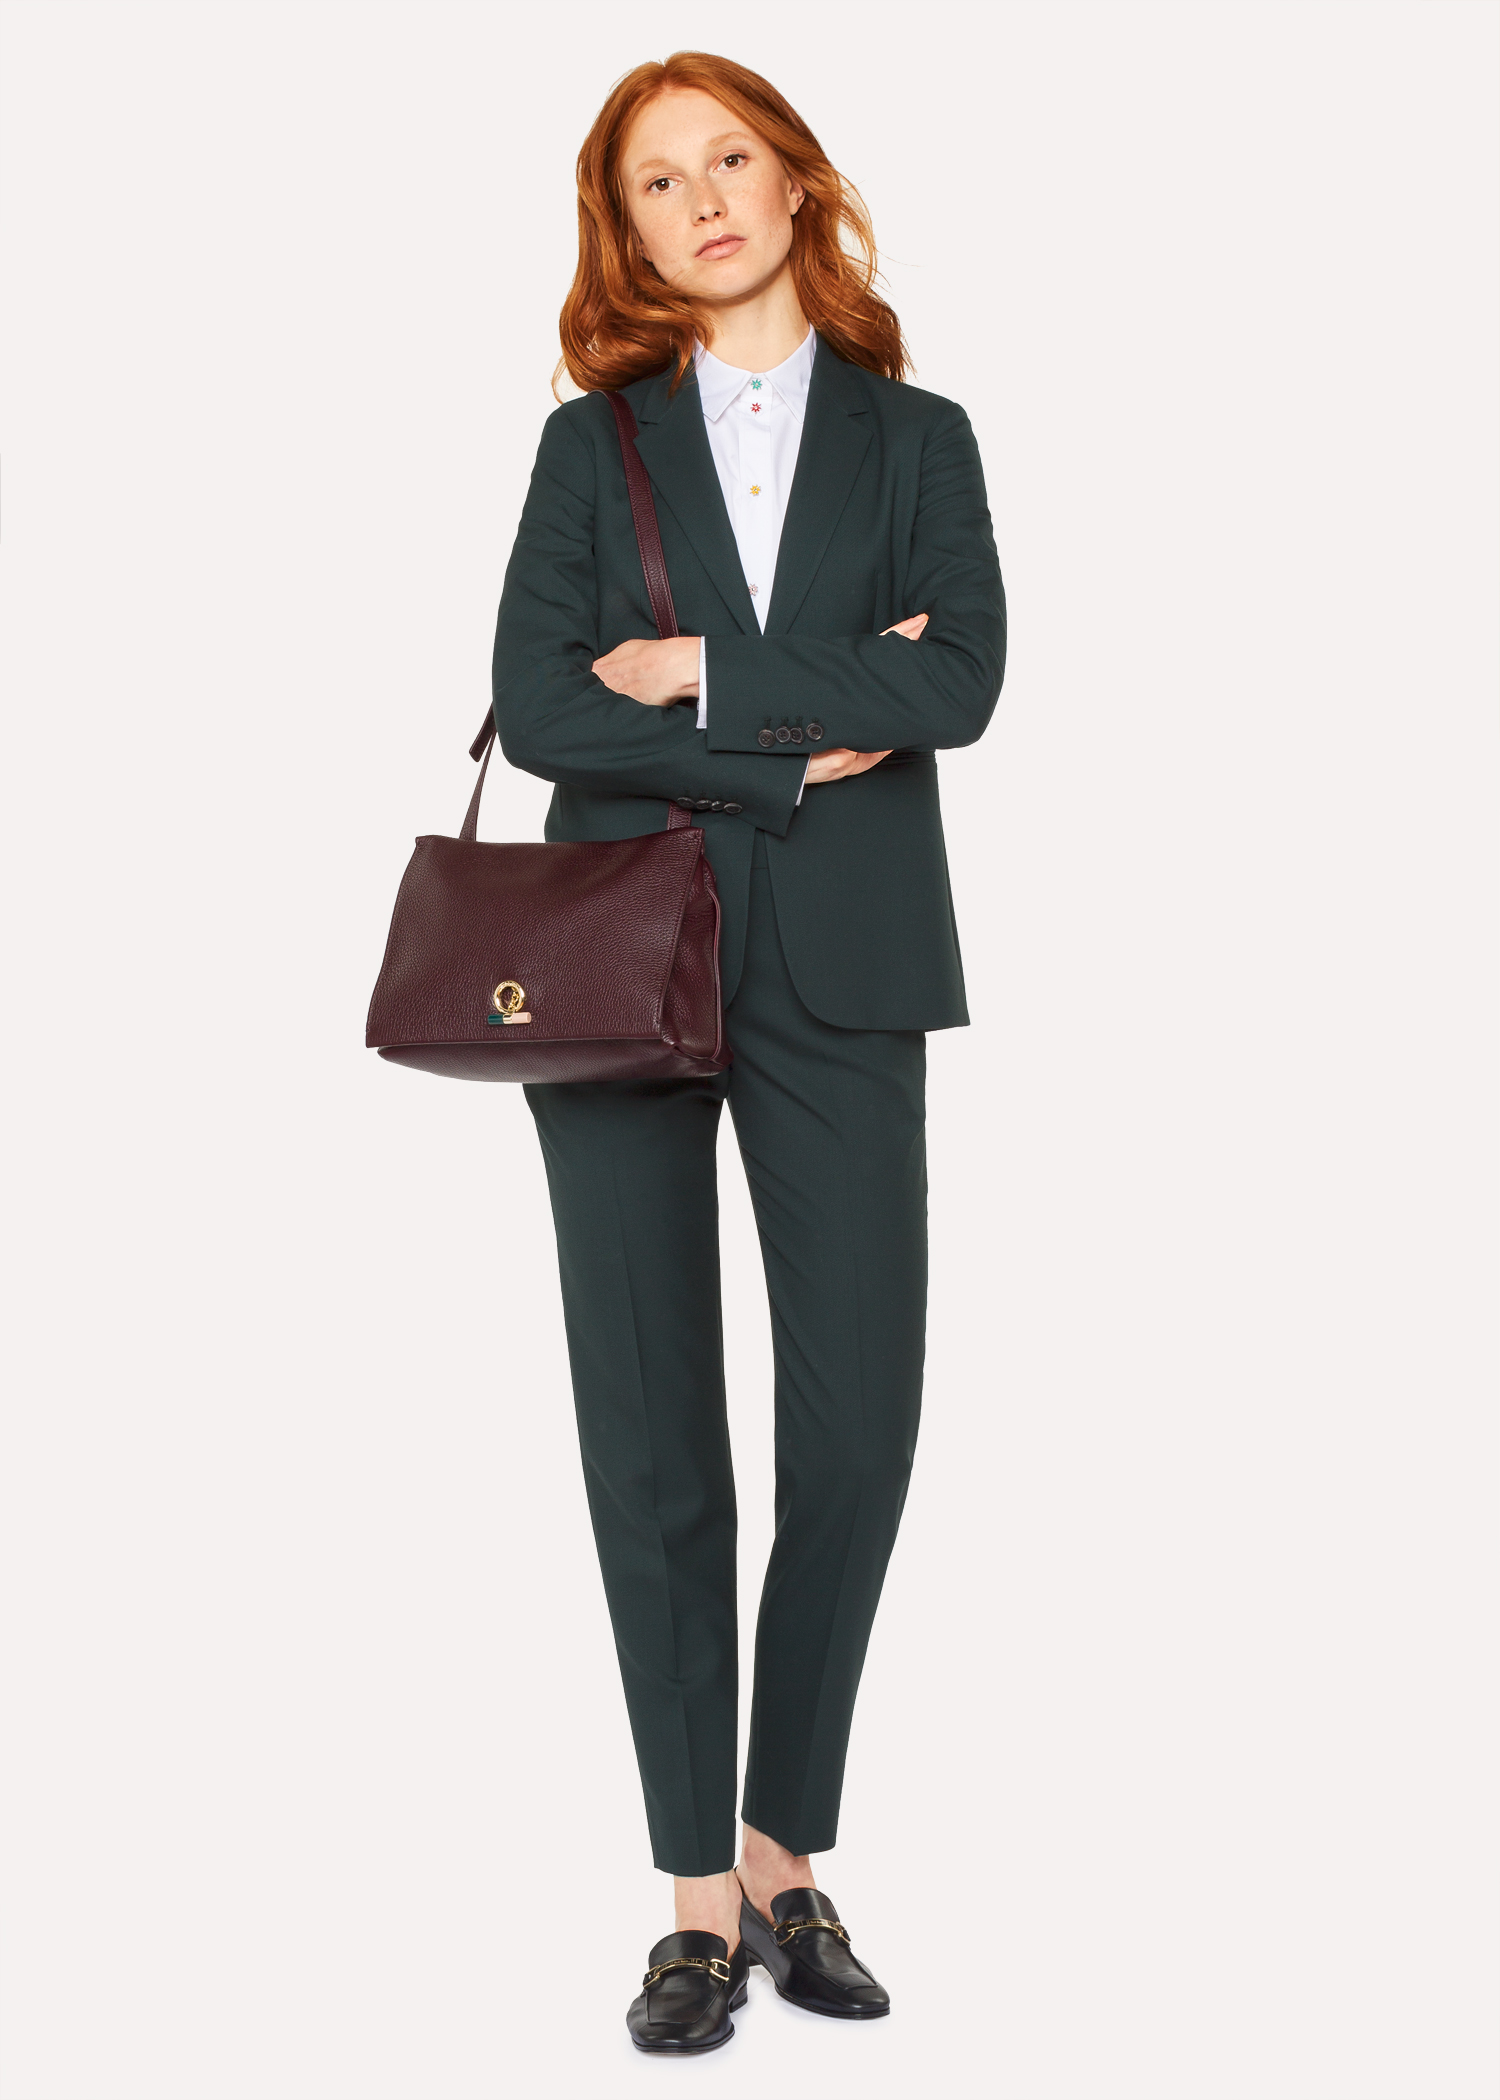 189ede1af00 A Suit To Travel In - Women s Dark Green One-Button Wool Suit - Paul ...